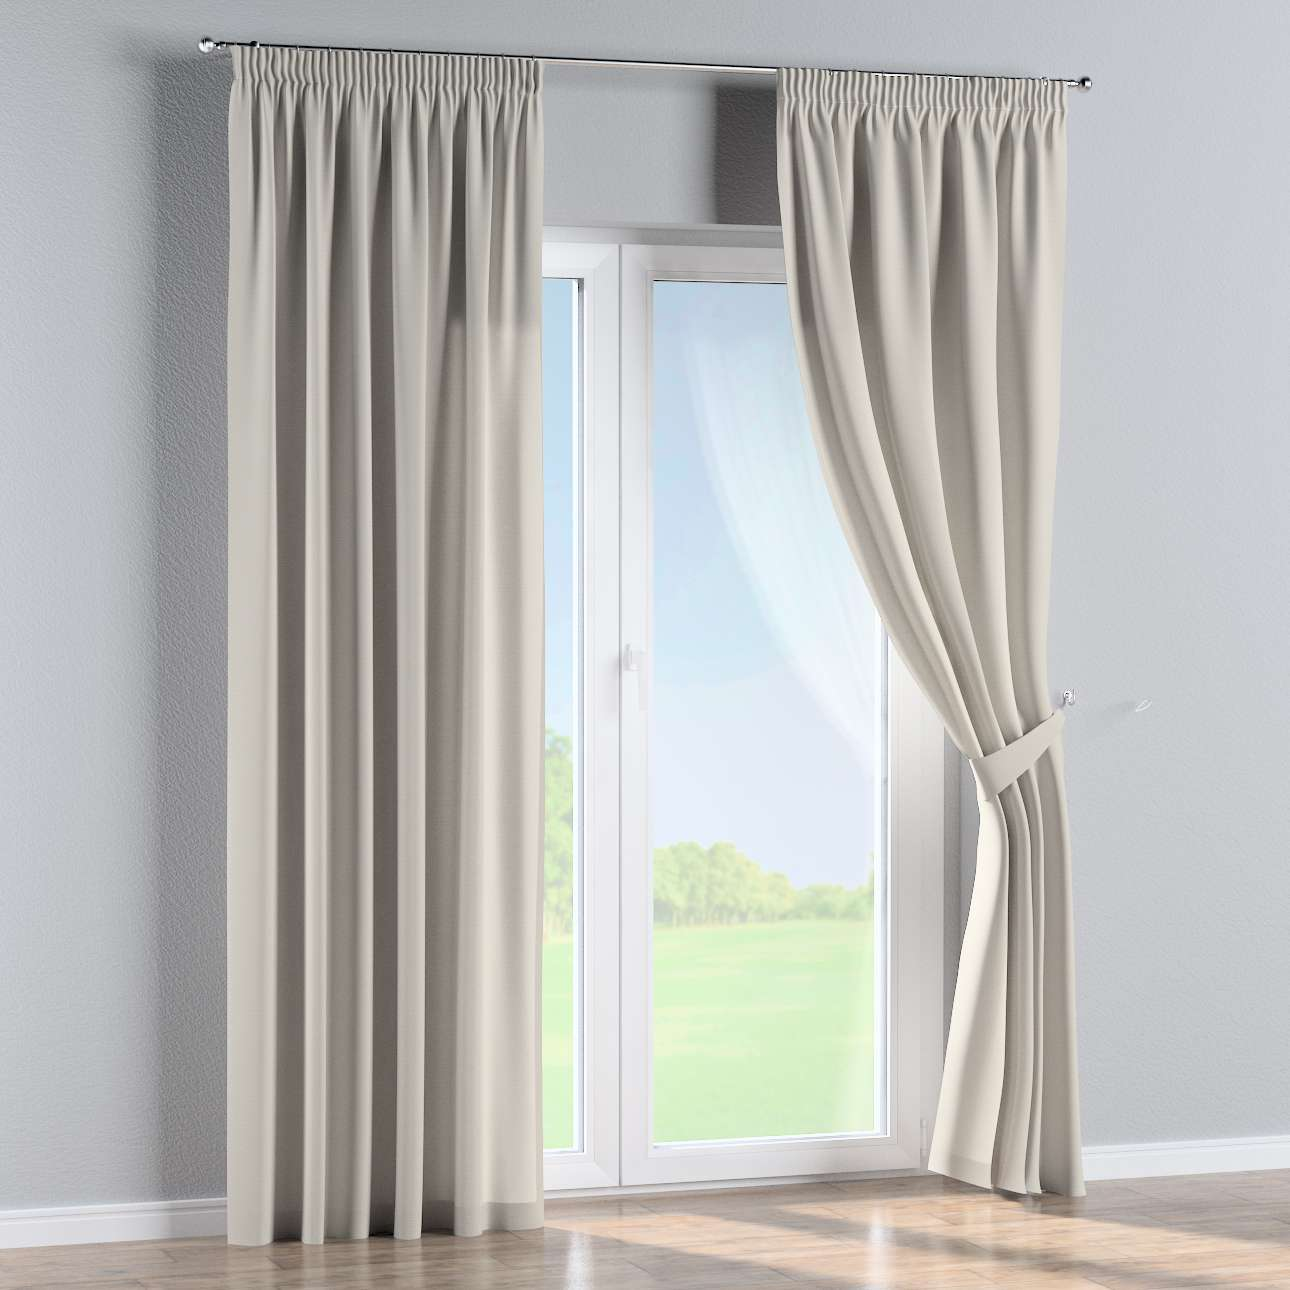 Pencil pleat curtains 130 x 260 cm (51 x 102 inch) in collection Cotton Panama, fabric: 702-31